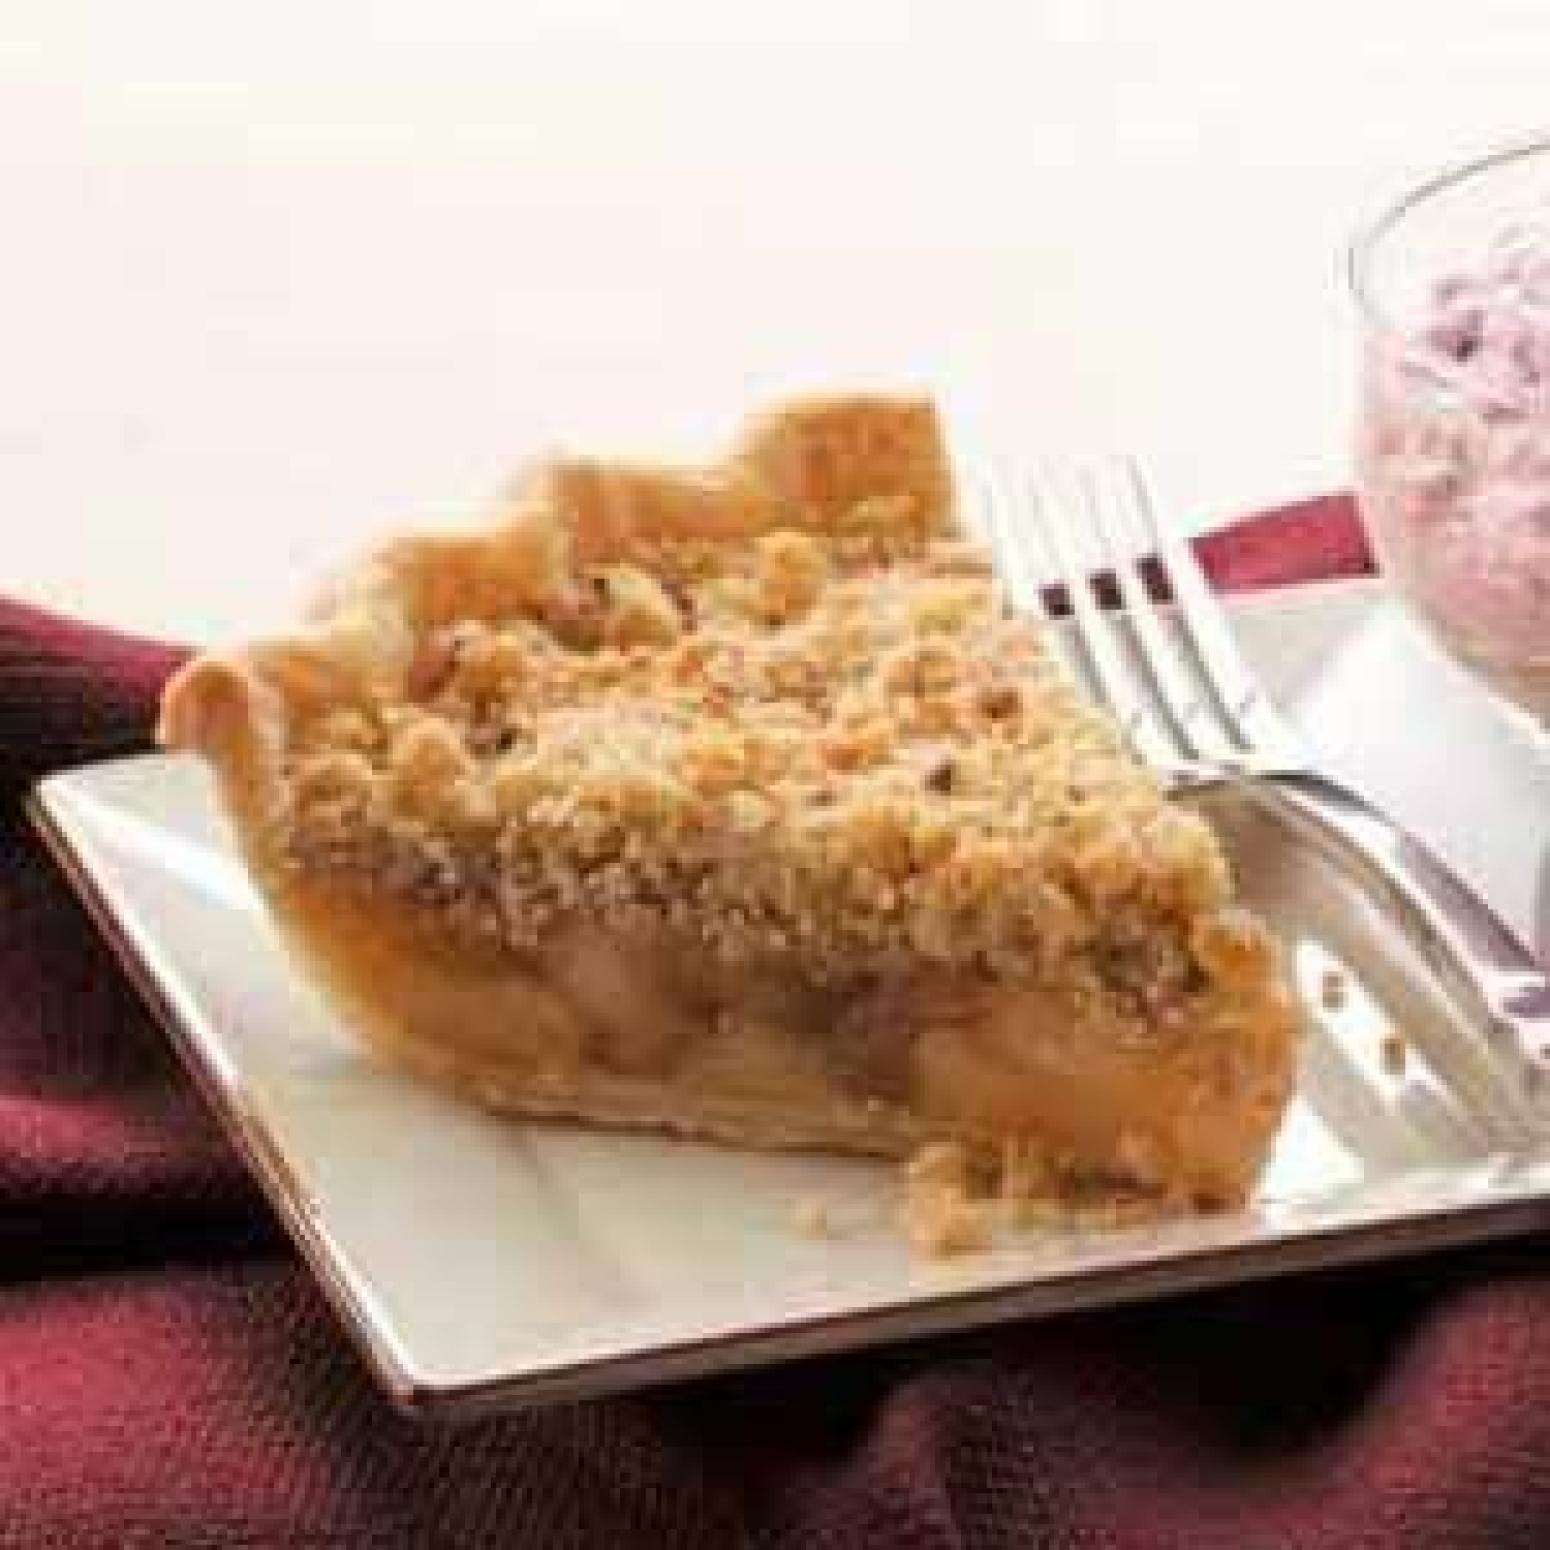 Cinnamon Apple Crumb Pie Recipe 2 | Just A Pinch Recipes